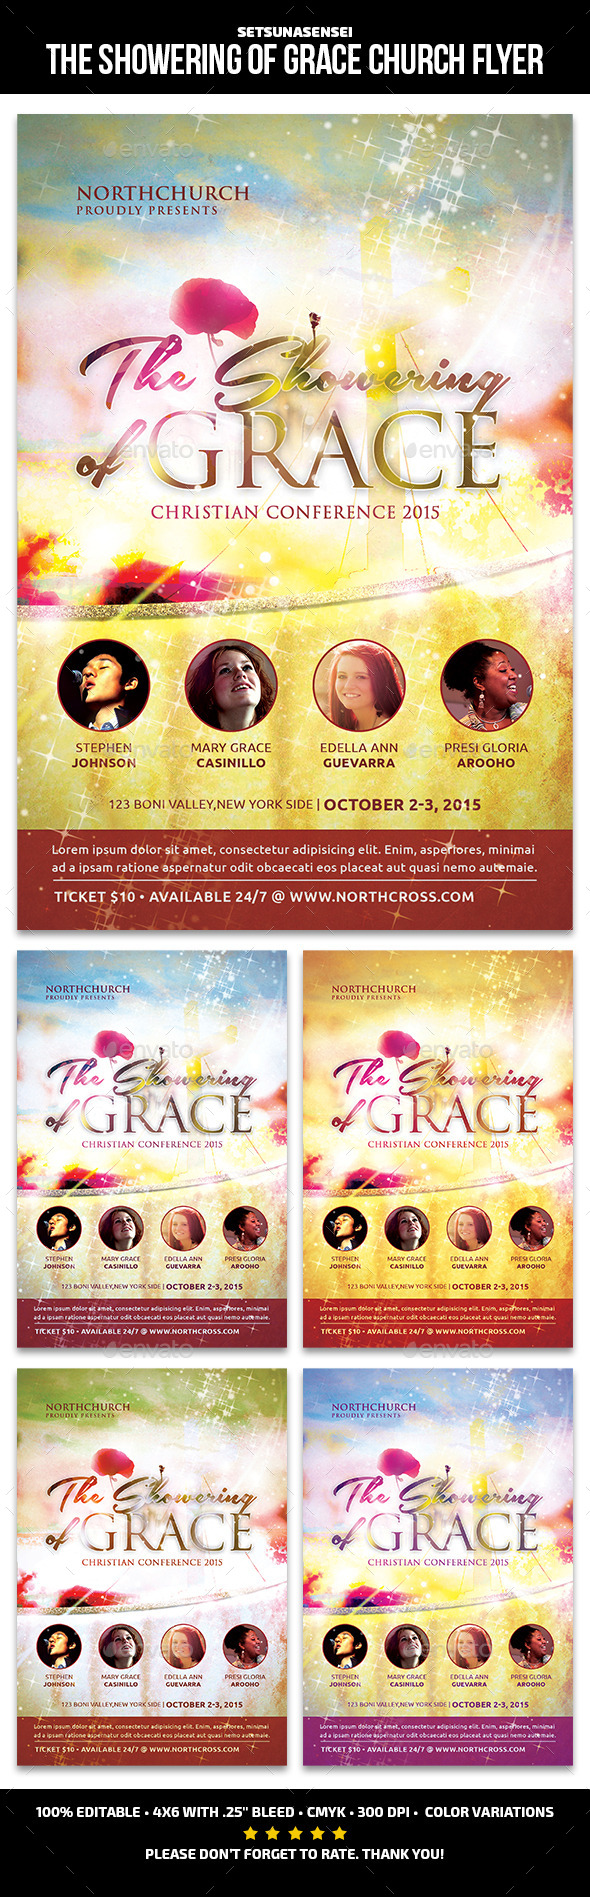 The Showering of Grace Church Flyer - Church Flyers